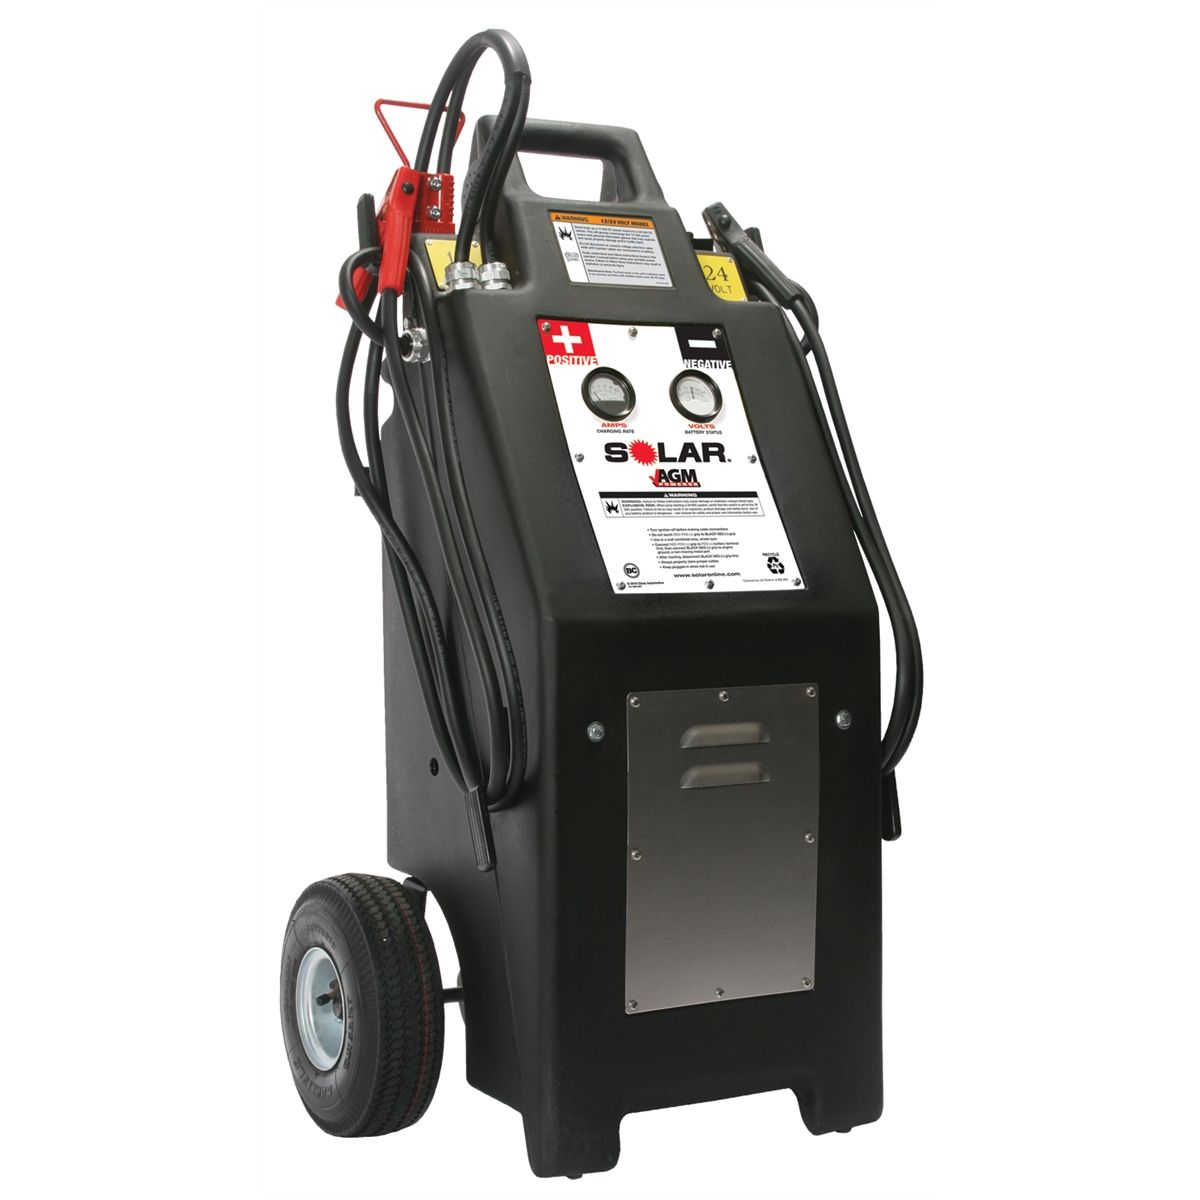 Booster Pac HT1224 12/24 Volt Commercial Charger/Starter with AGM Batteries